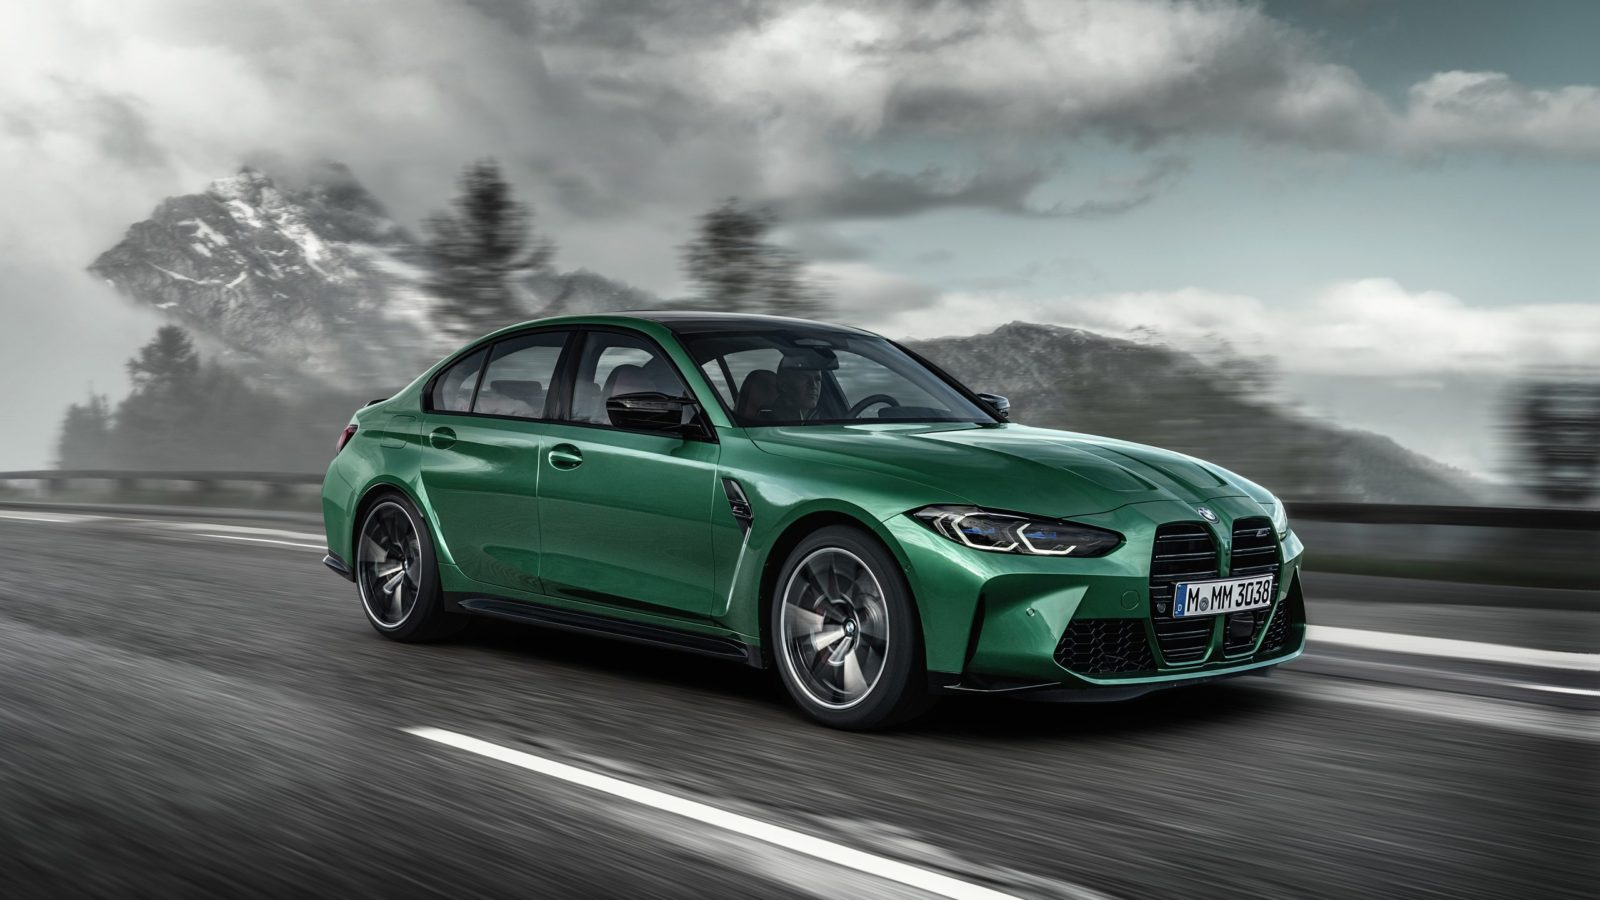 2021-bmw-m3-competition-wallpapers